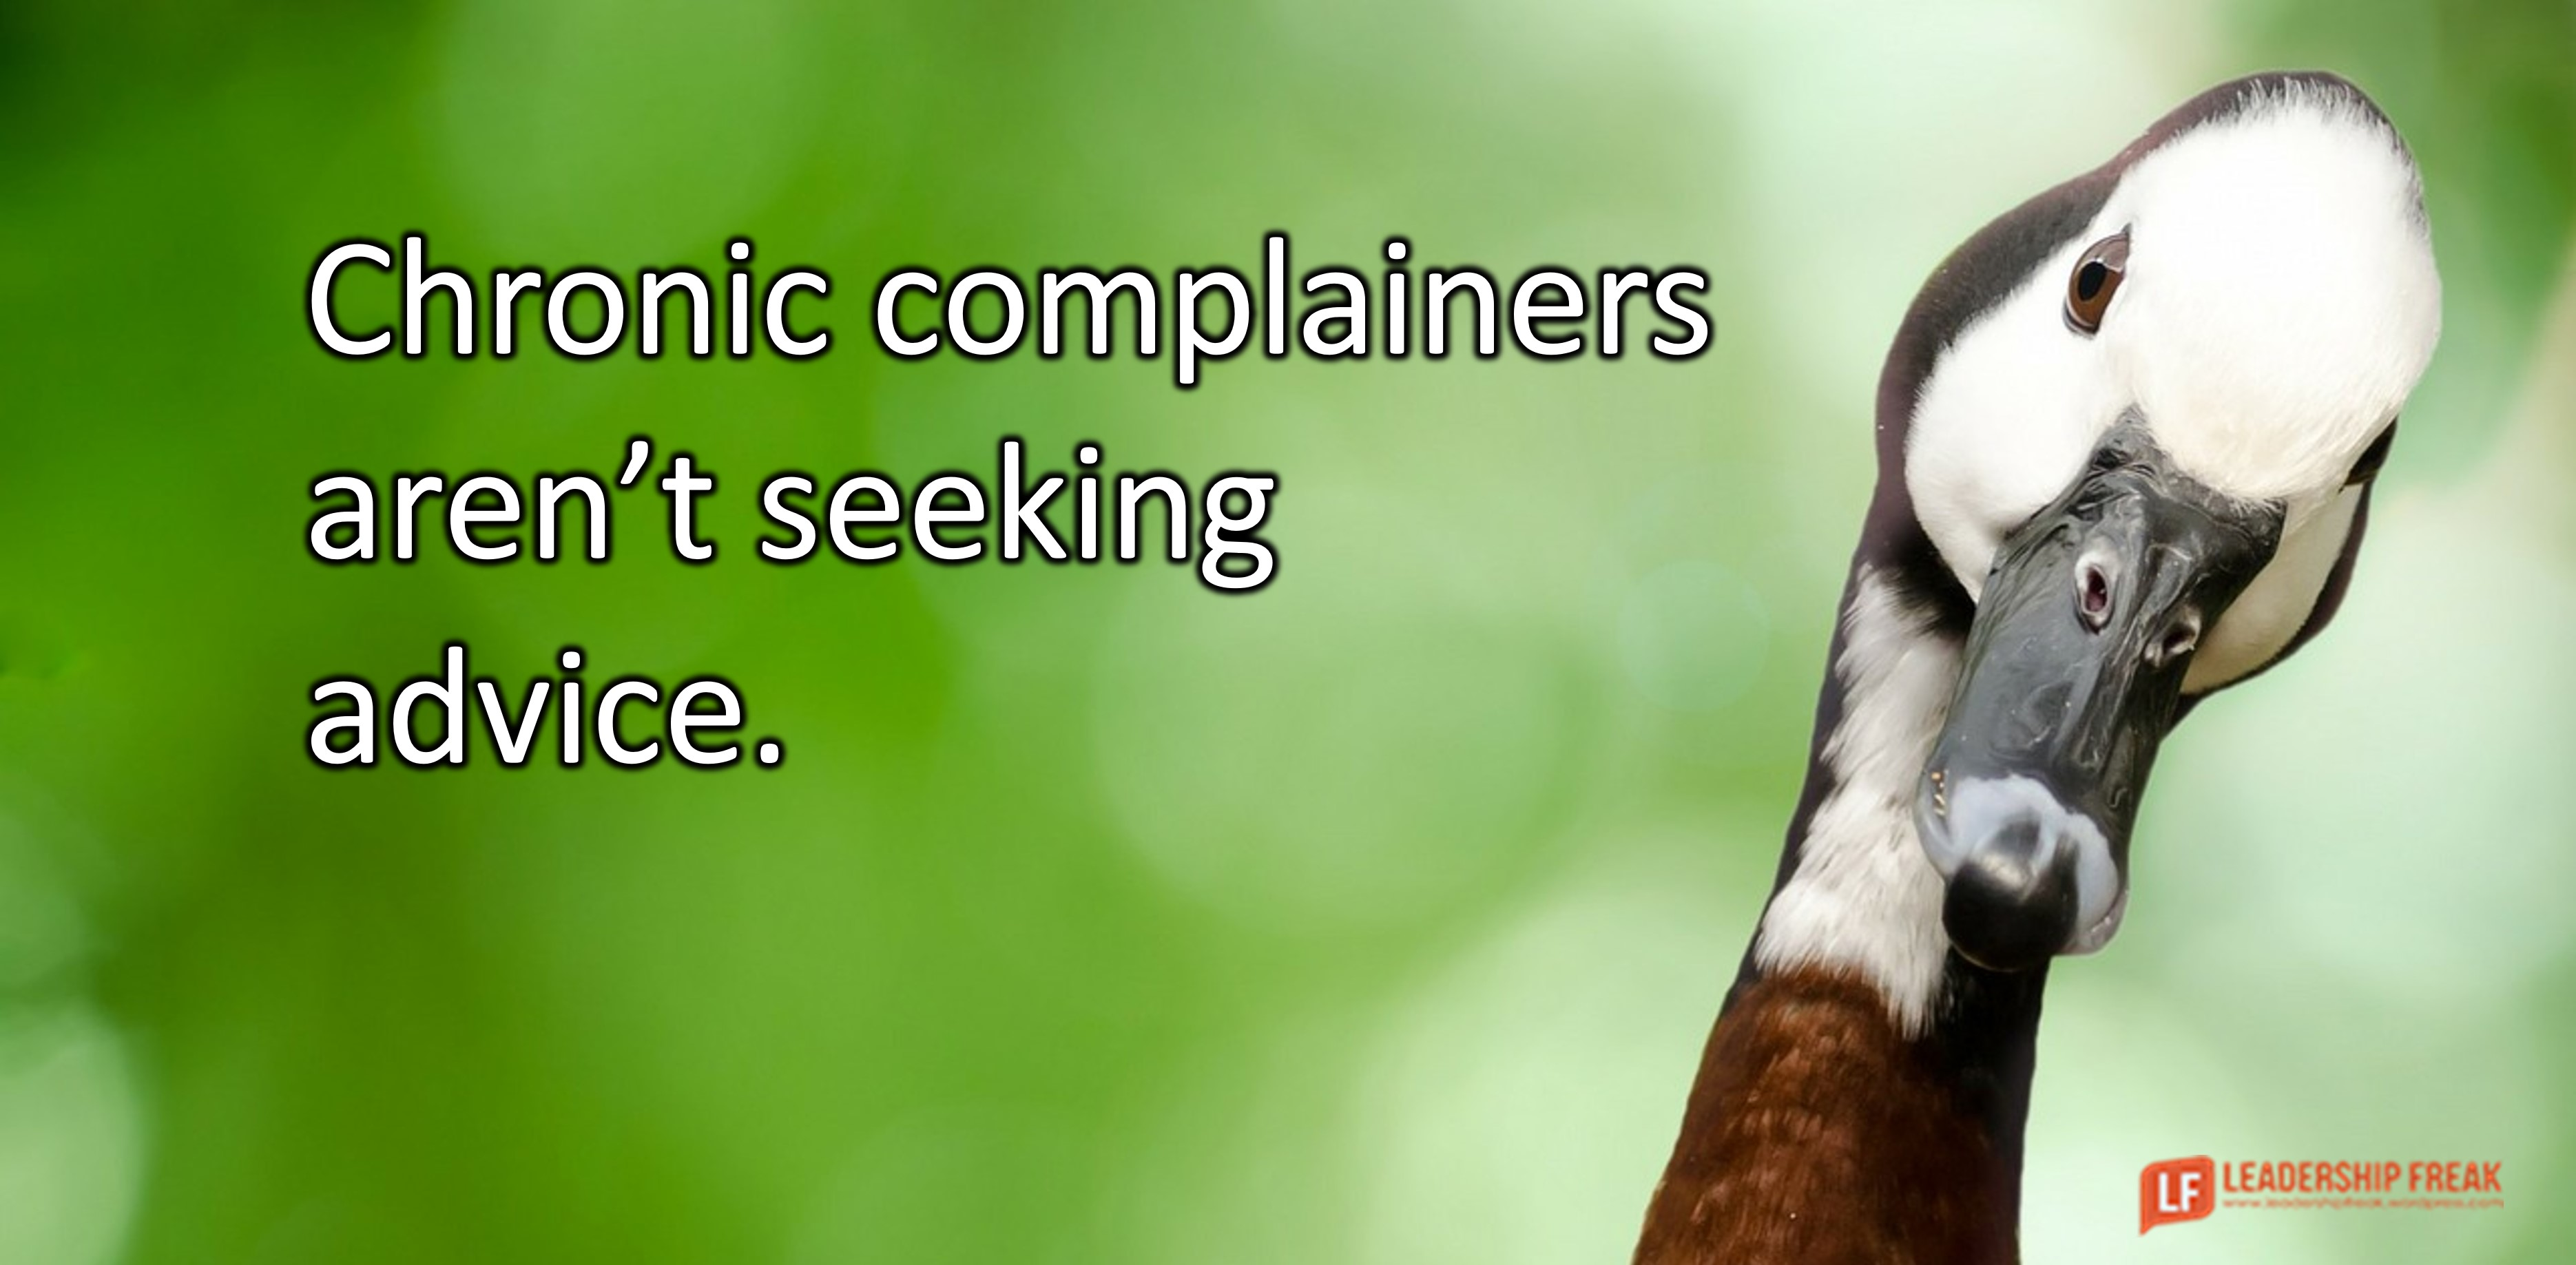 Goose with tilted head.  Chronic complainers aren't seeking advice.